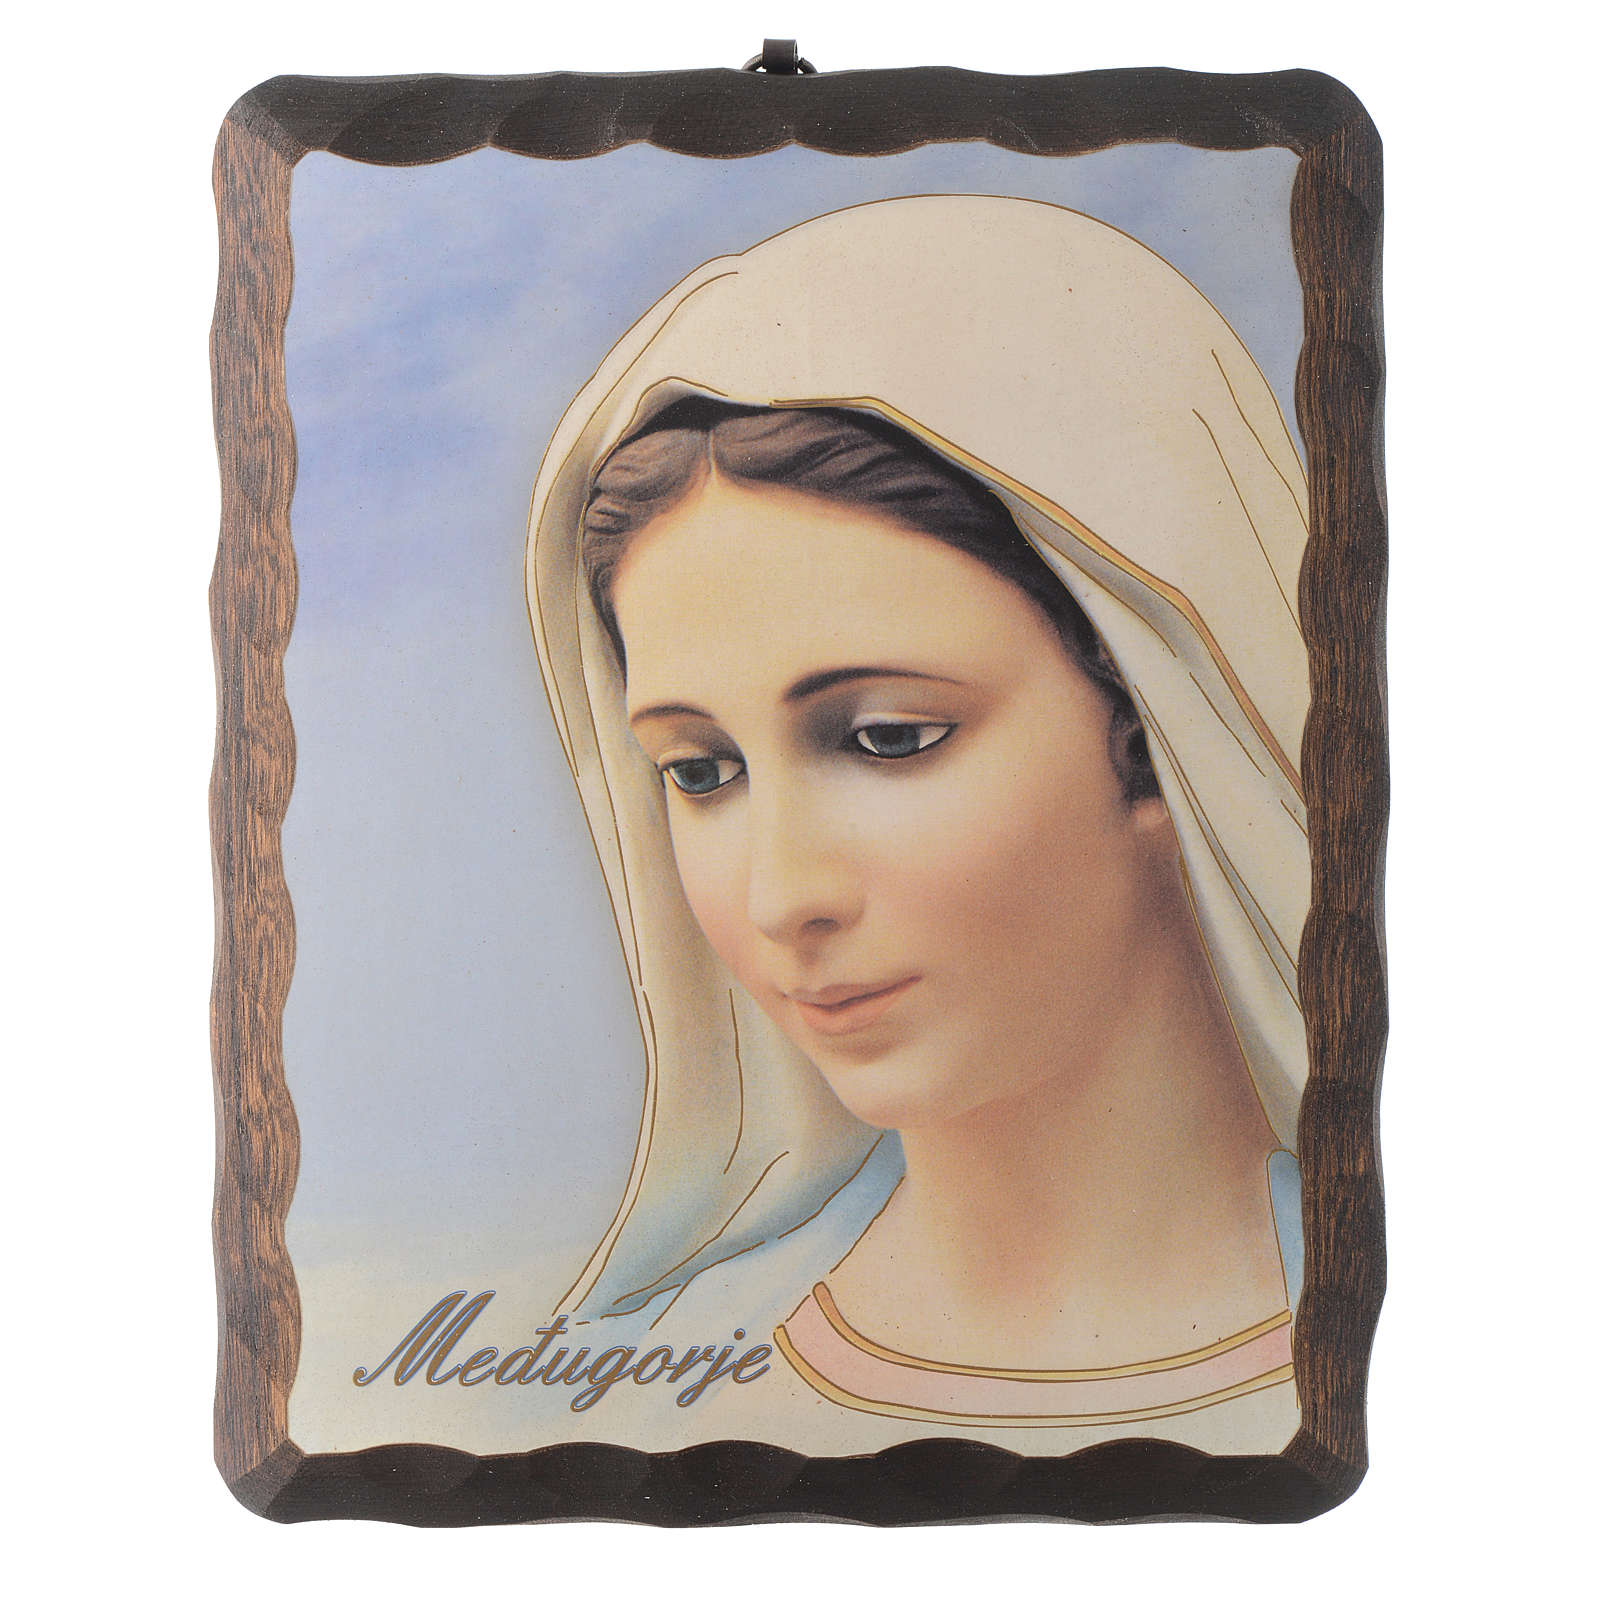 Our Lady of Medjugorje lithography in solid wood painting 4